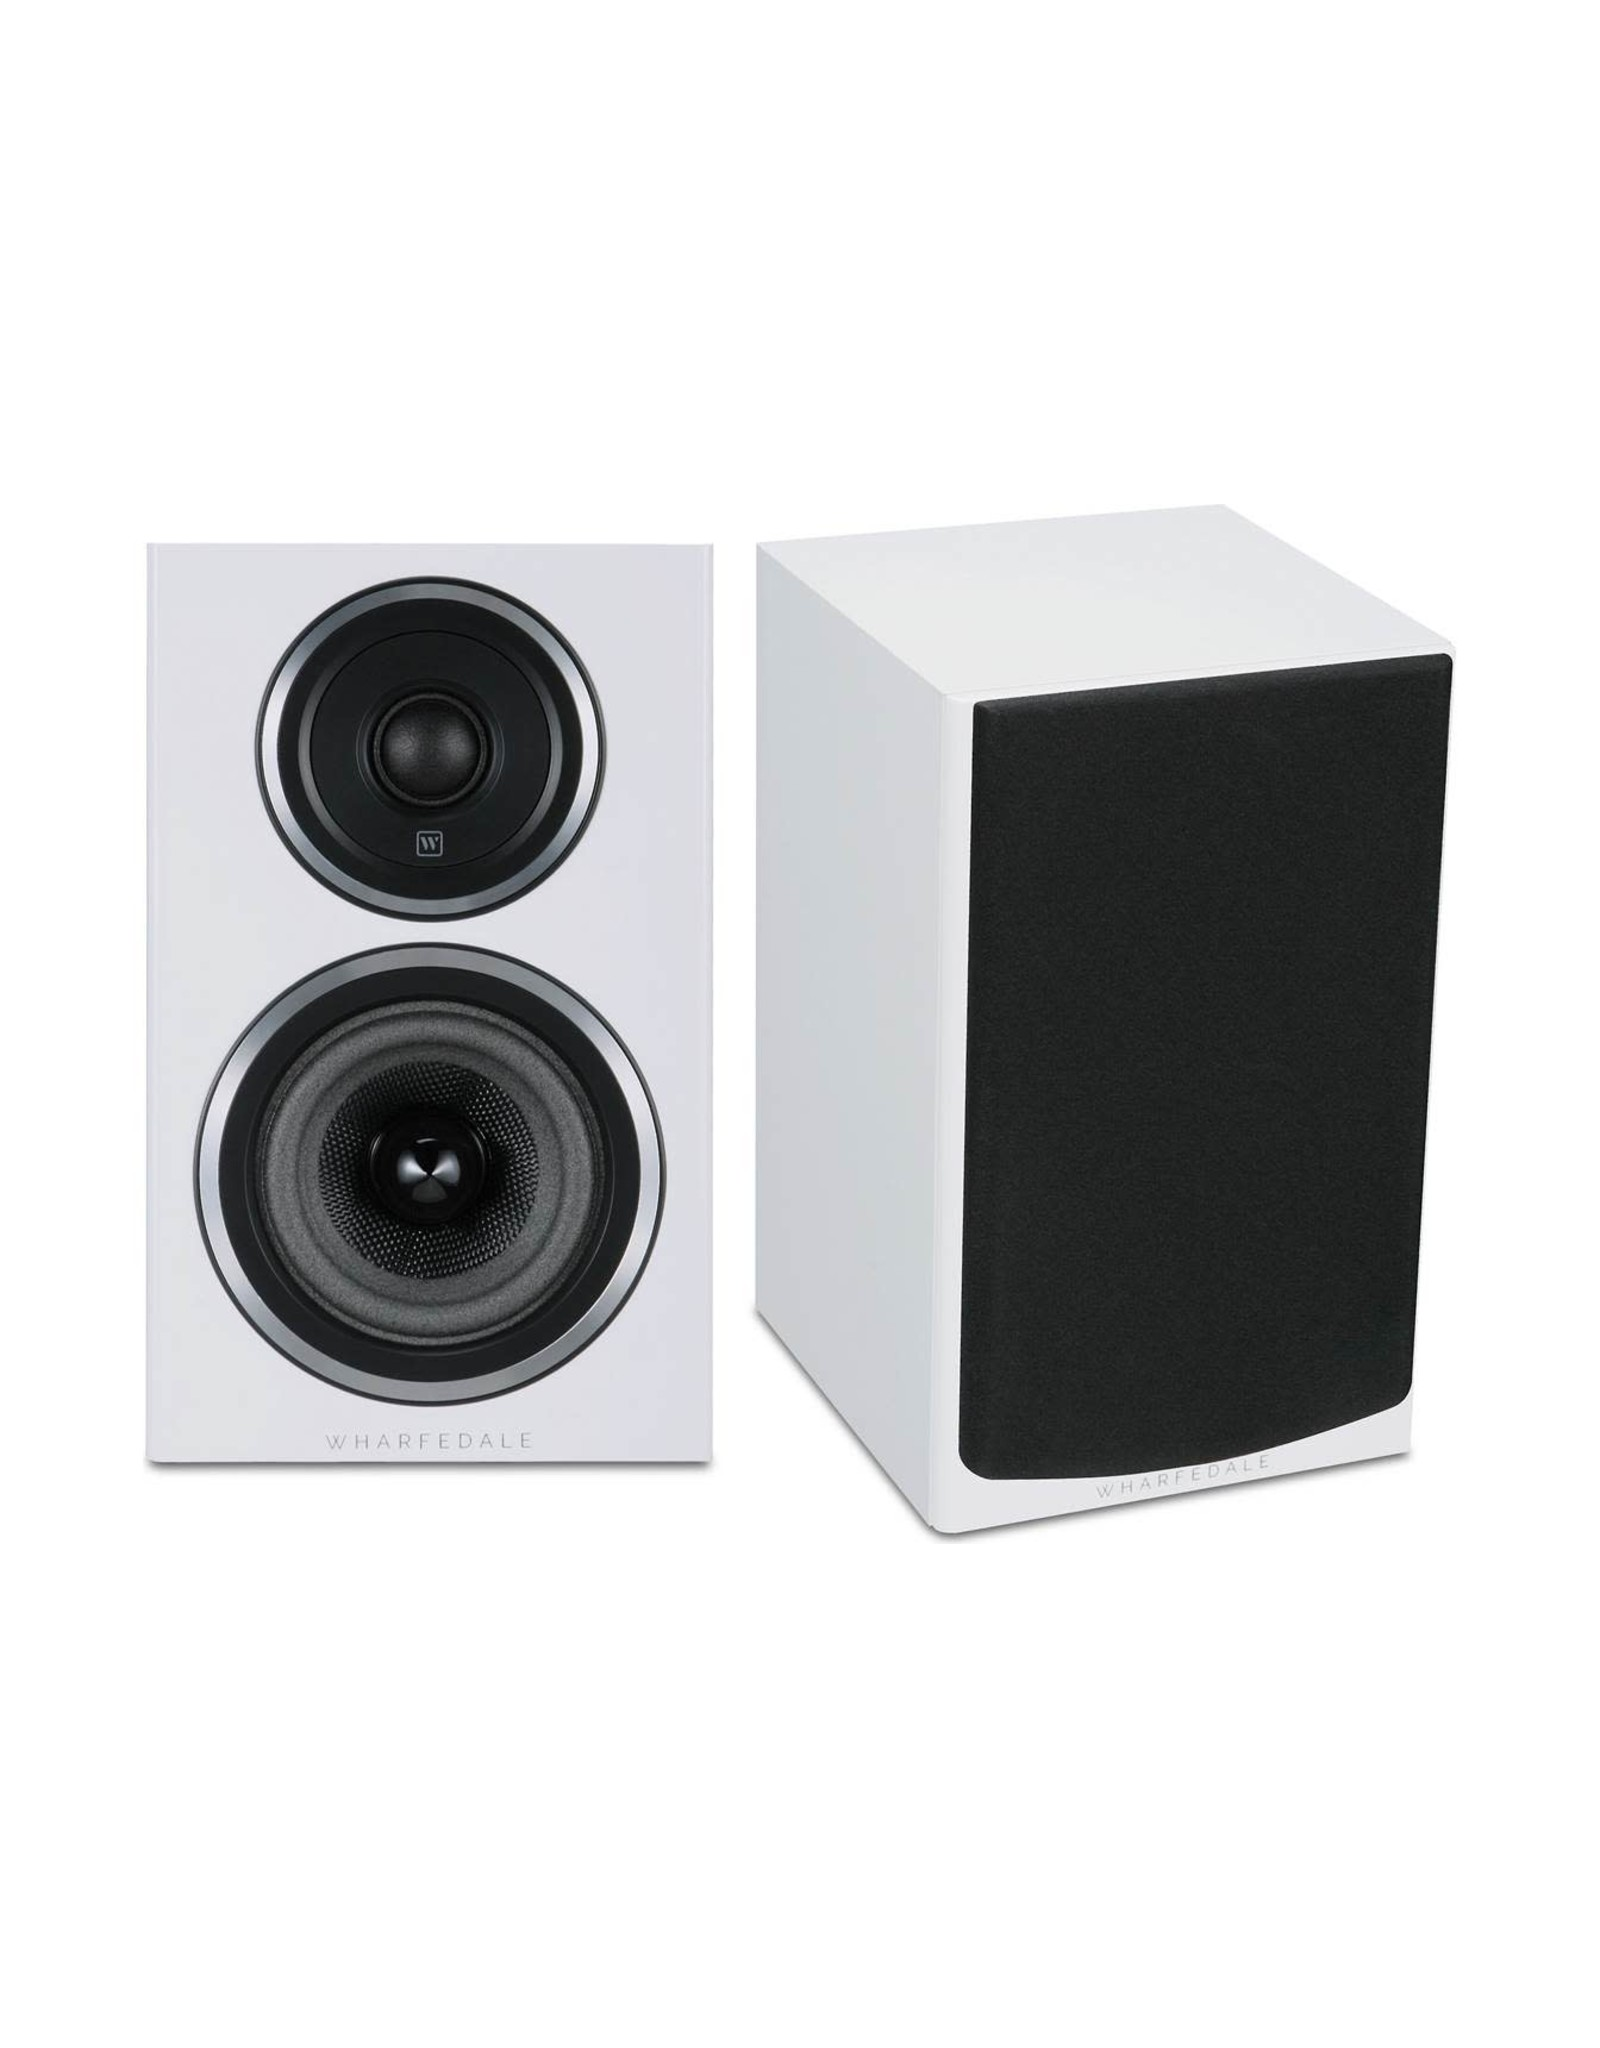 Wharfedale Wharfedale Diamond 11.0 Bookshelf Speakers